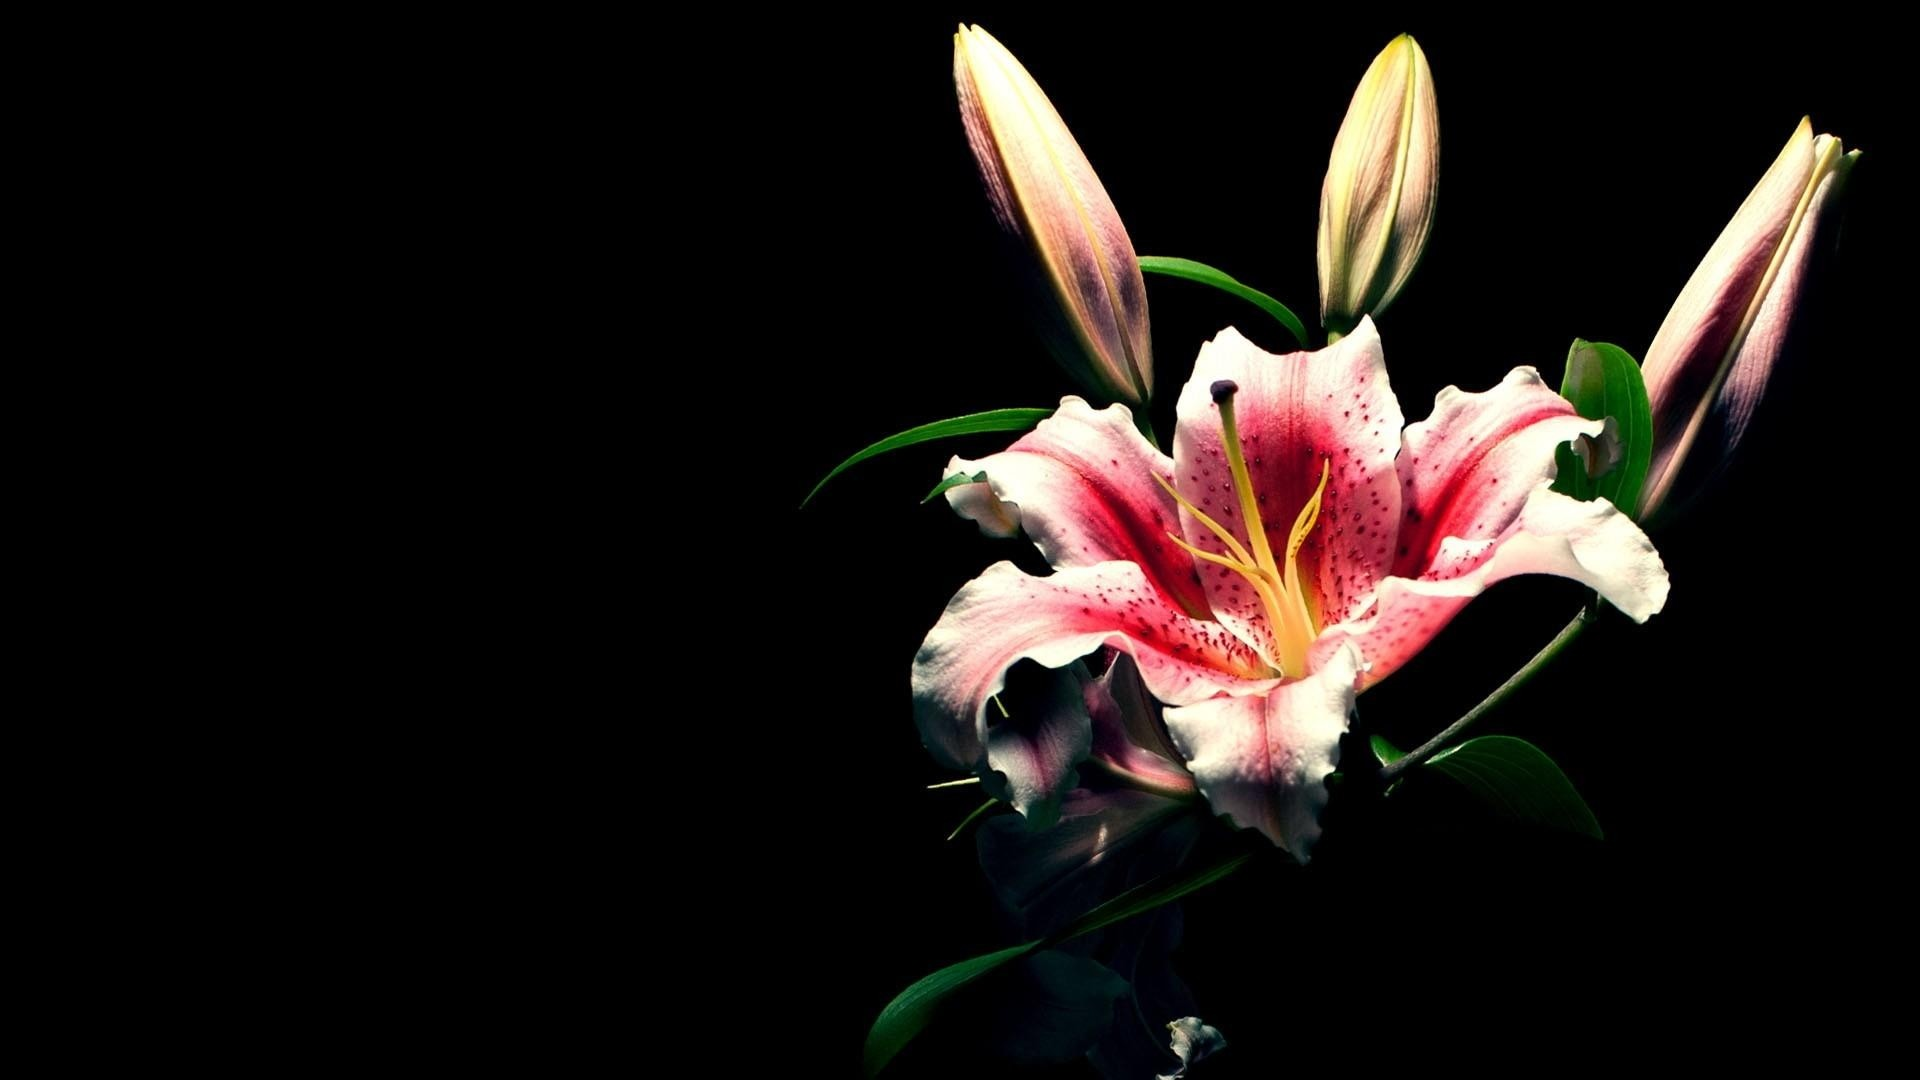 Lily wallpaper 63 images 1920x1080 preview wallpaper lily flower bud black background 1920x1080 izmirmasajfo